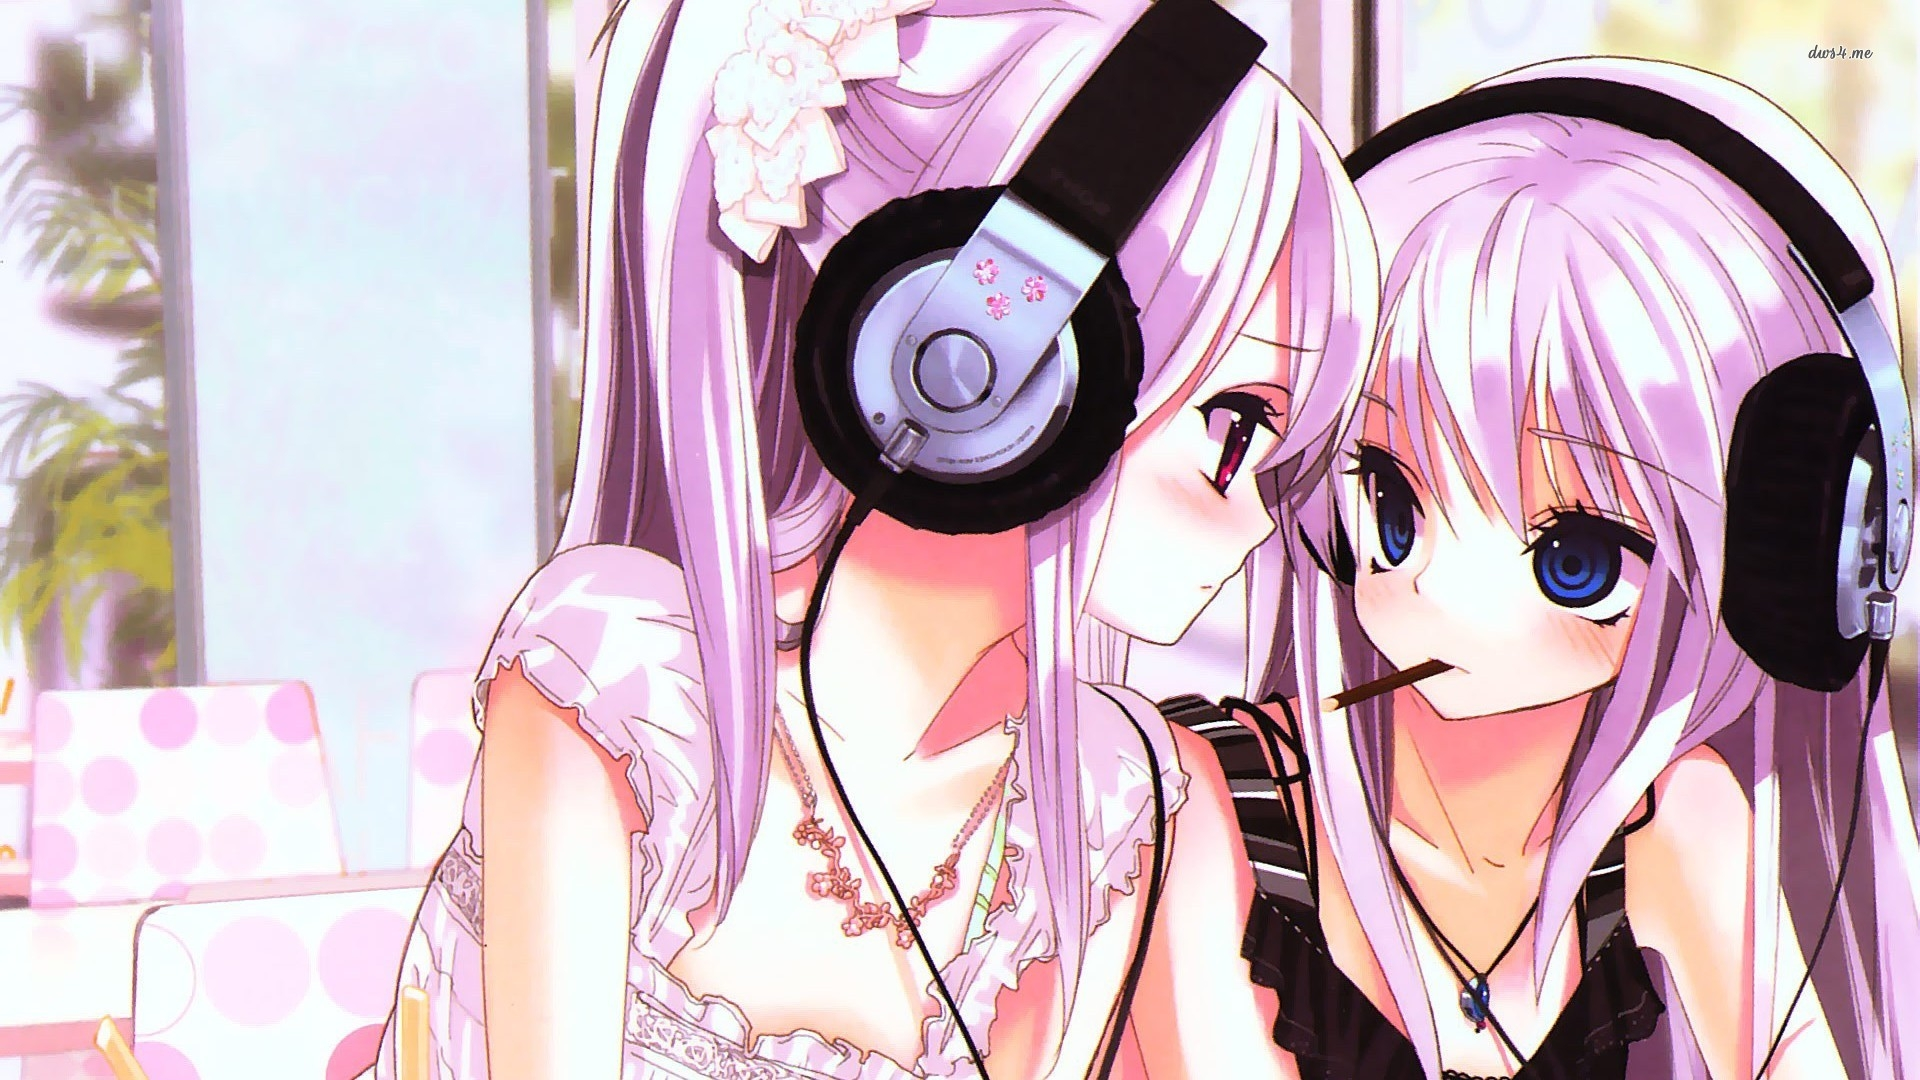 Best Friend, Cute, Headphones, Pink Hair